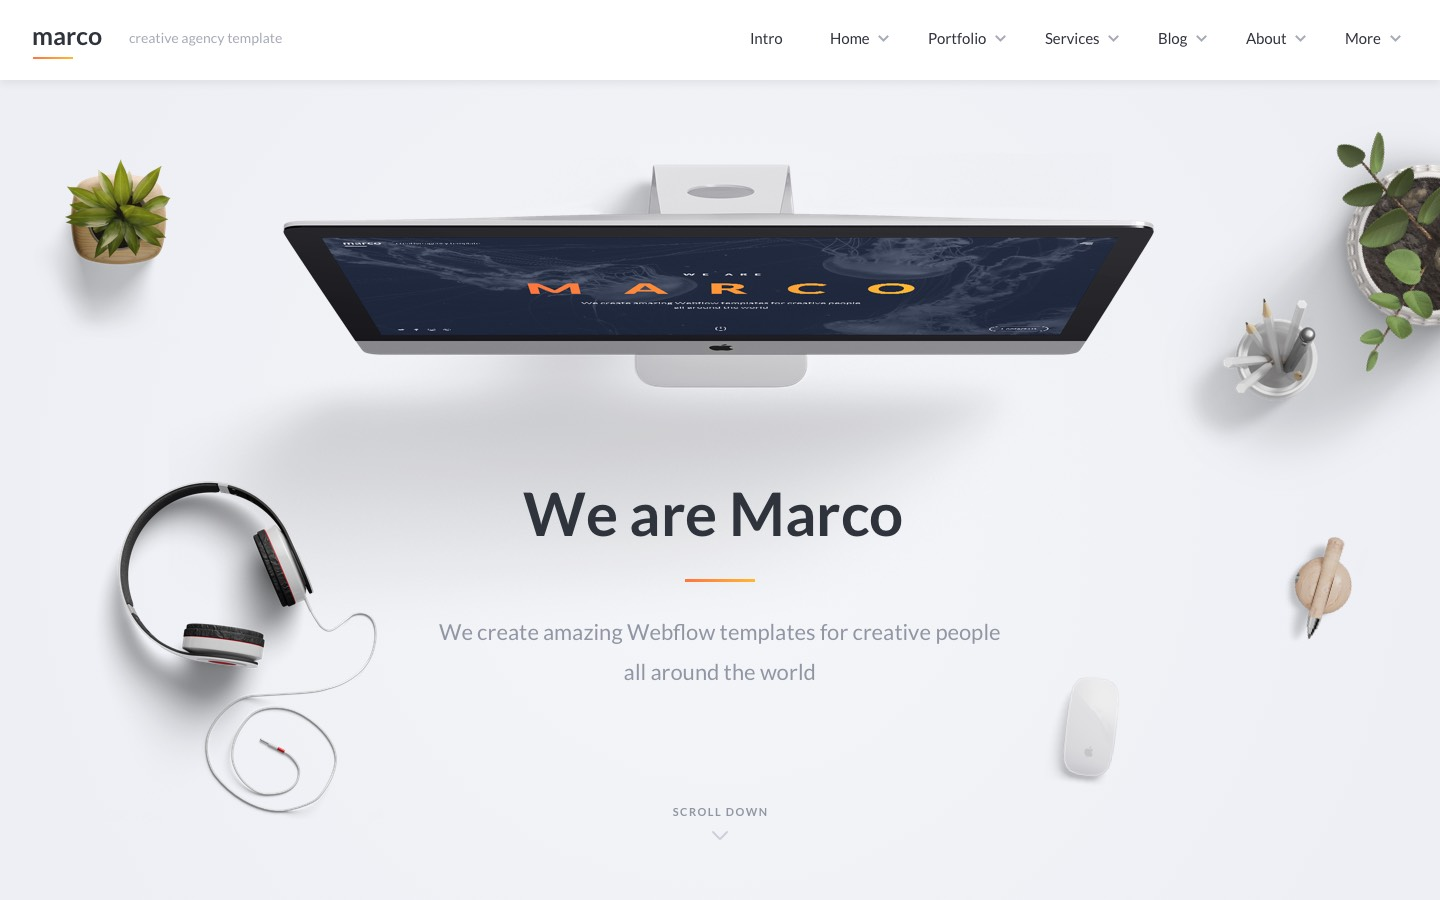 Marco-1